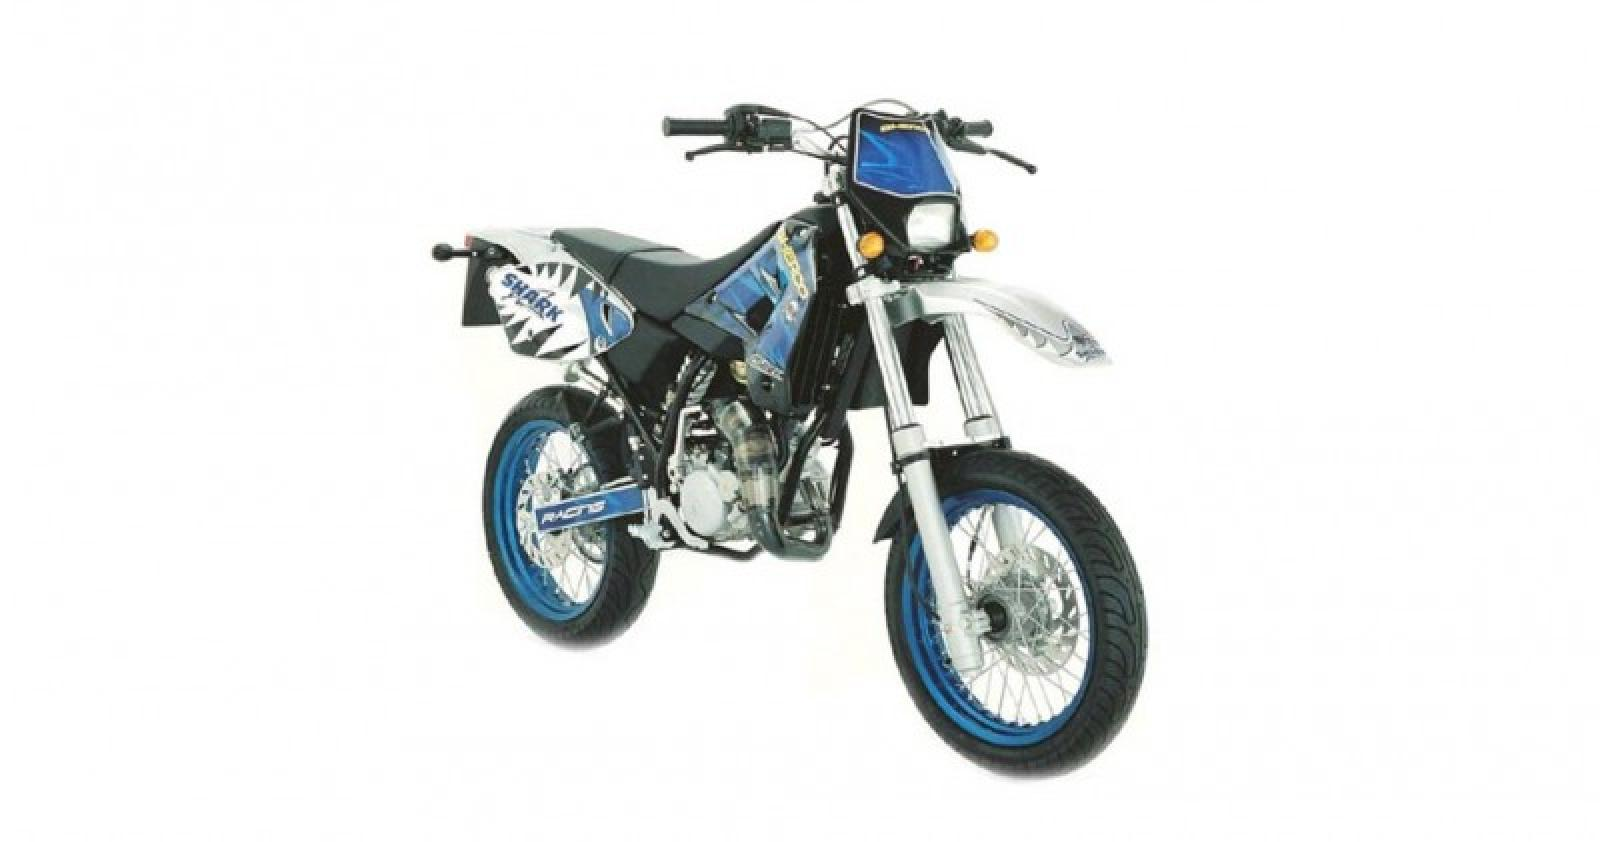 Sherco 125 Enduro Shark Replica images #124647